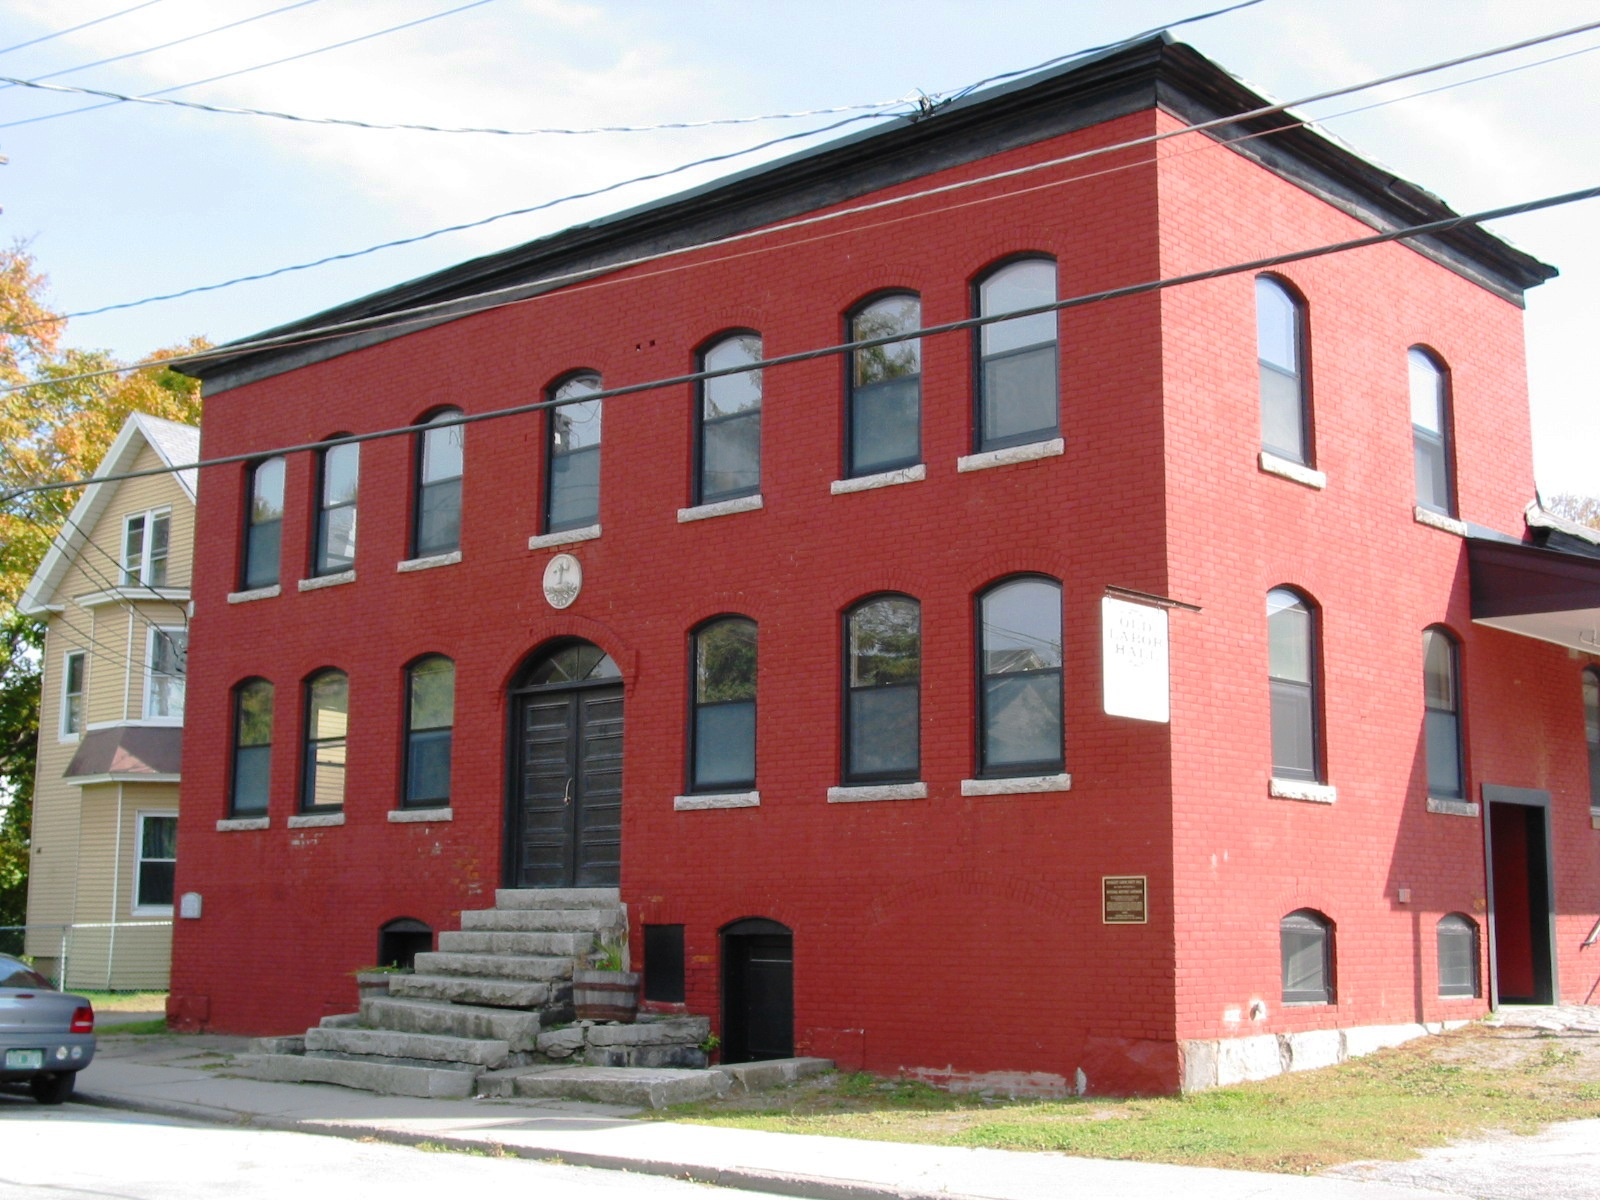 Barre Old Labor Hall